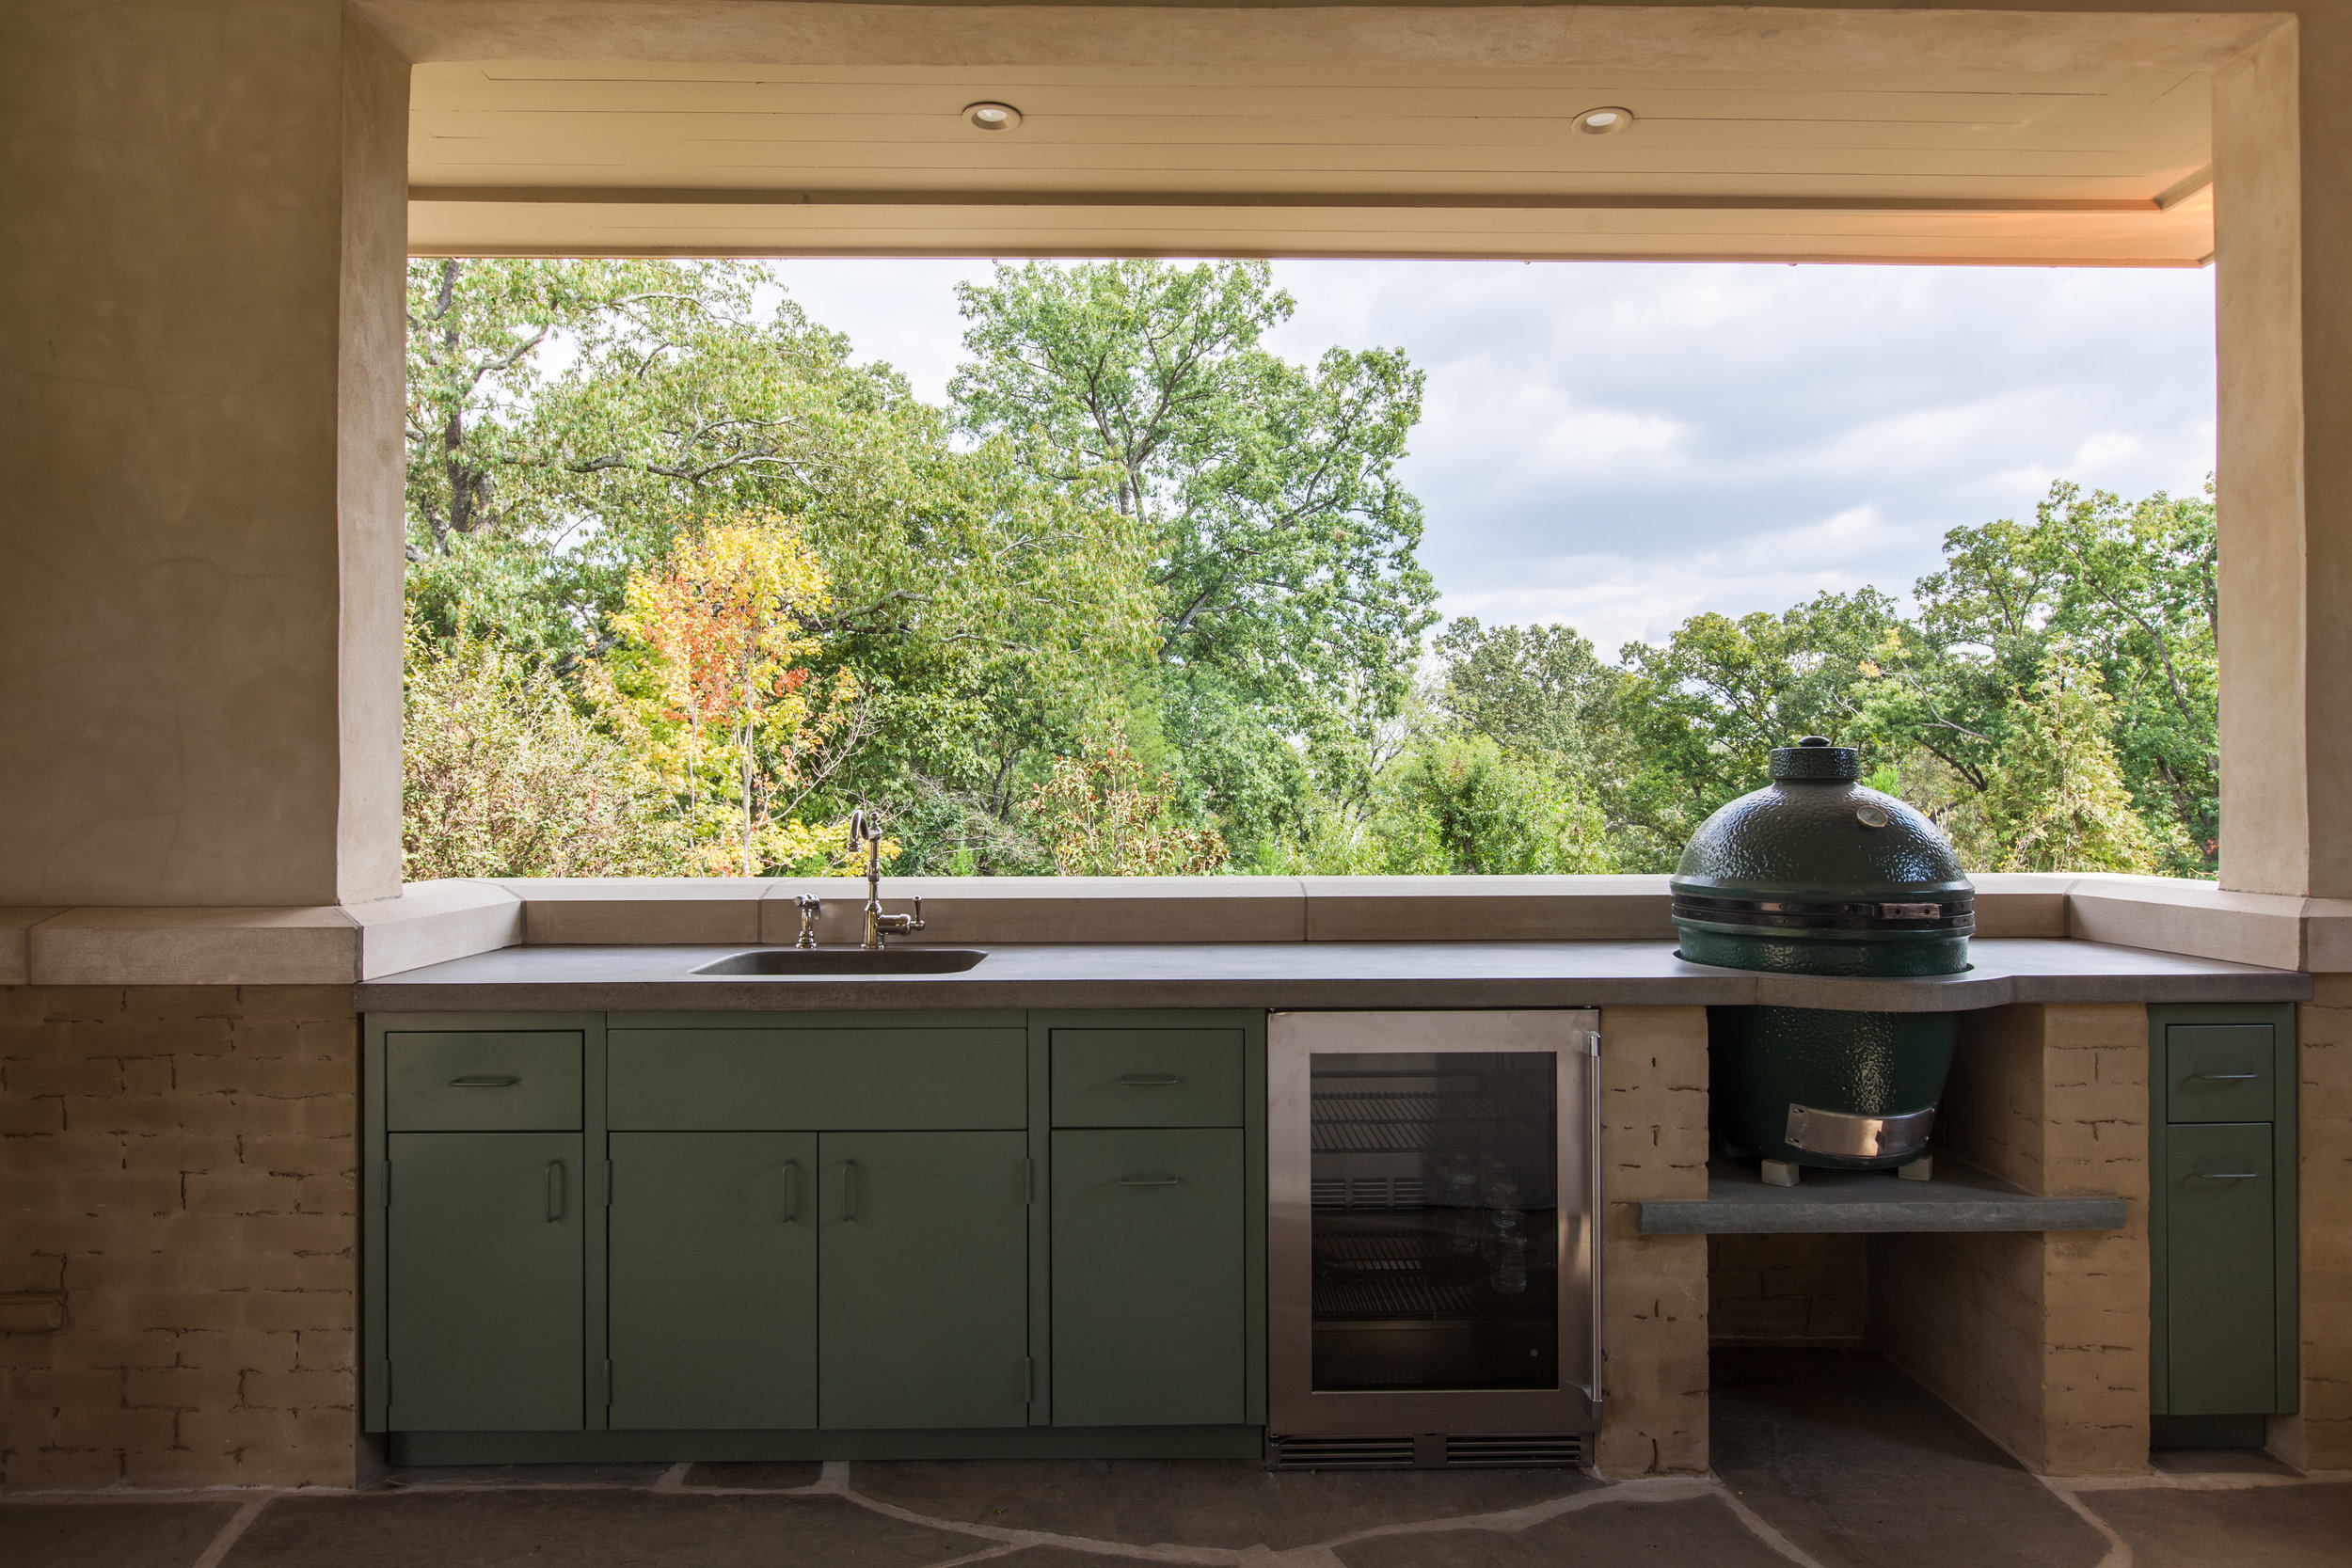 A proper grilling station with a proper view.  #residential